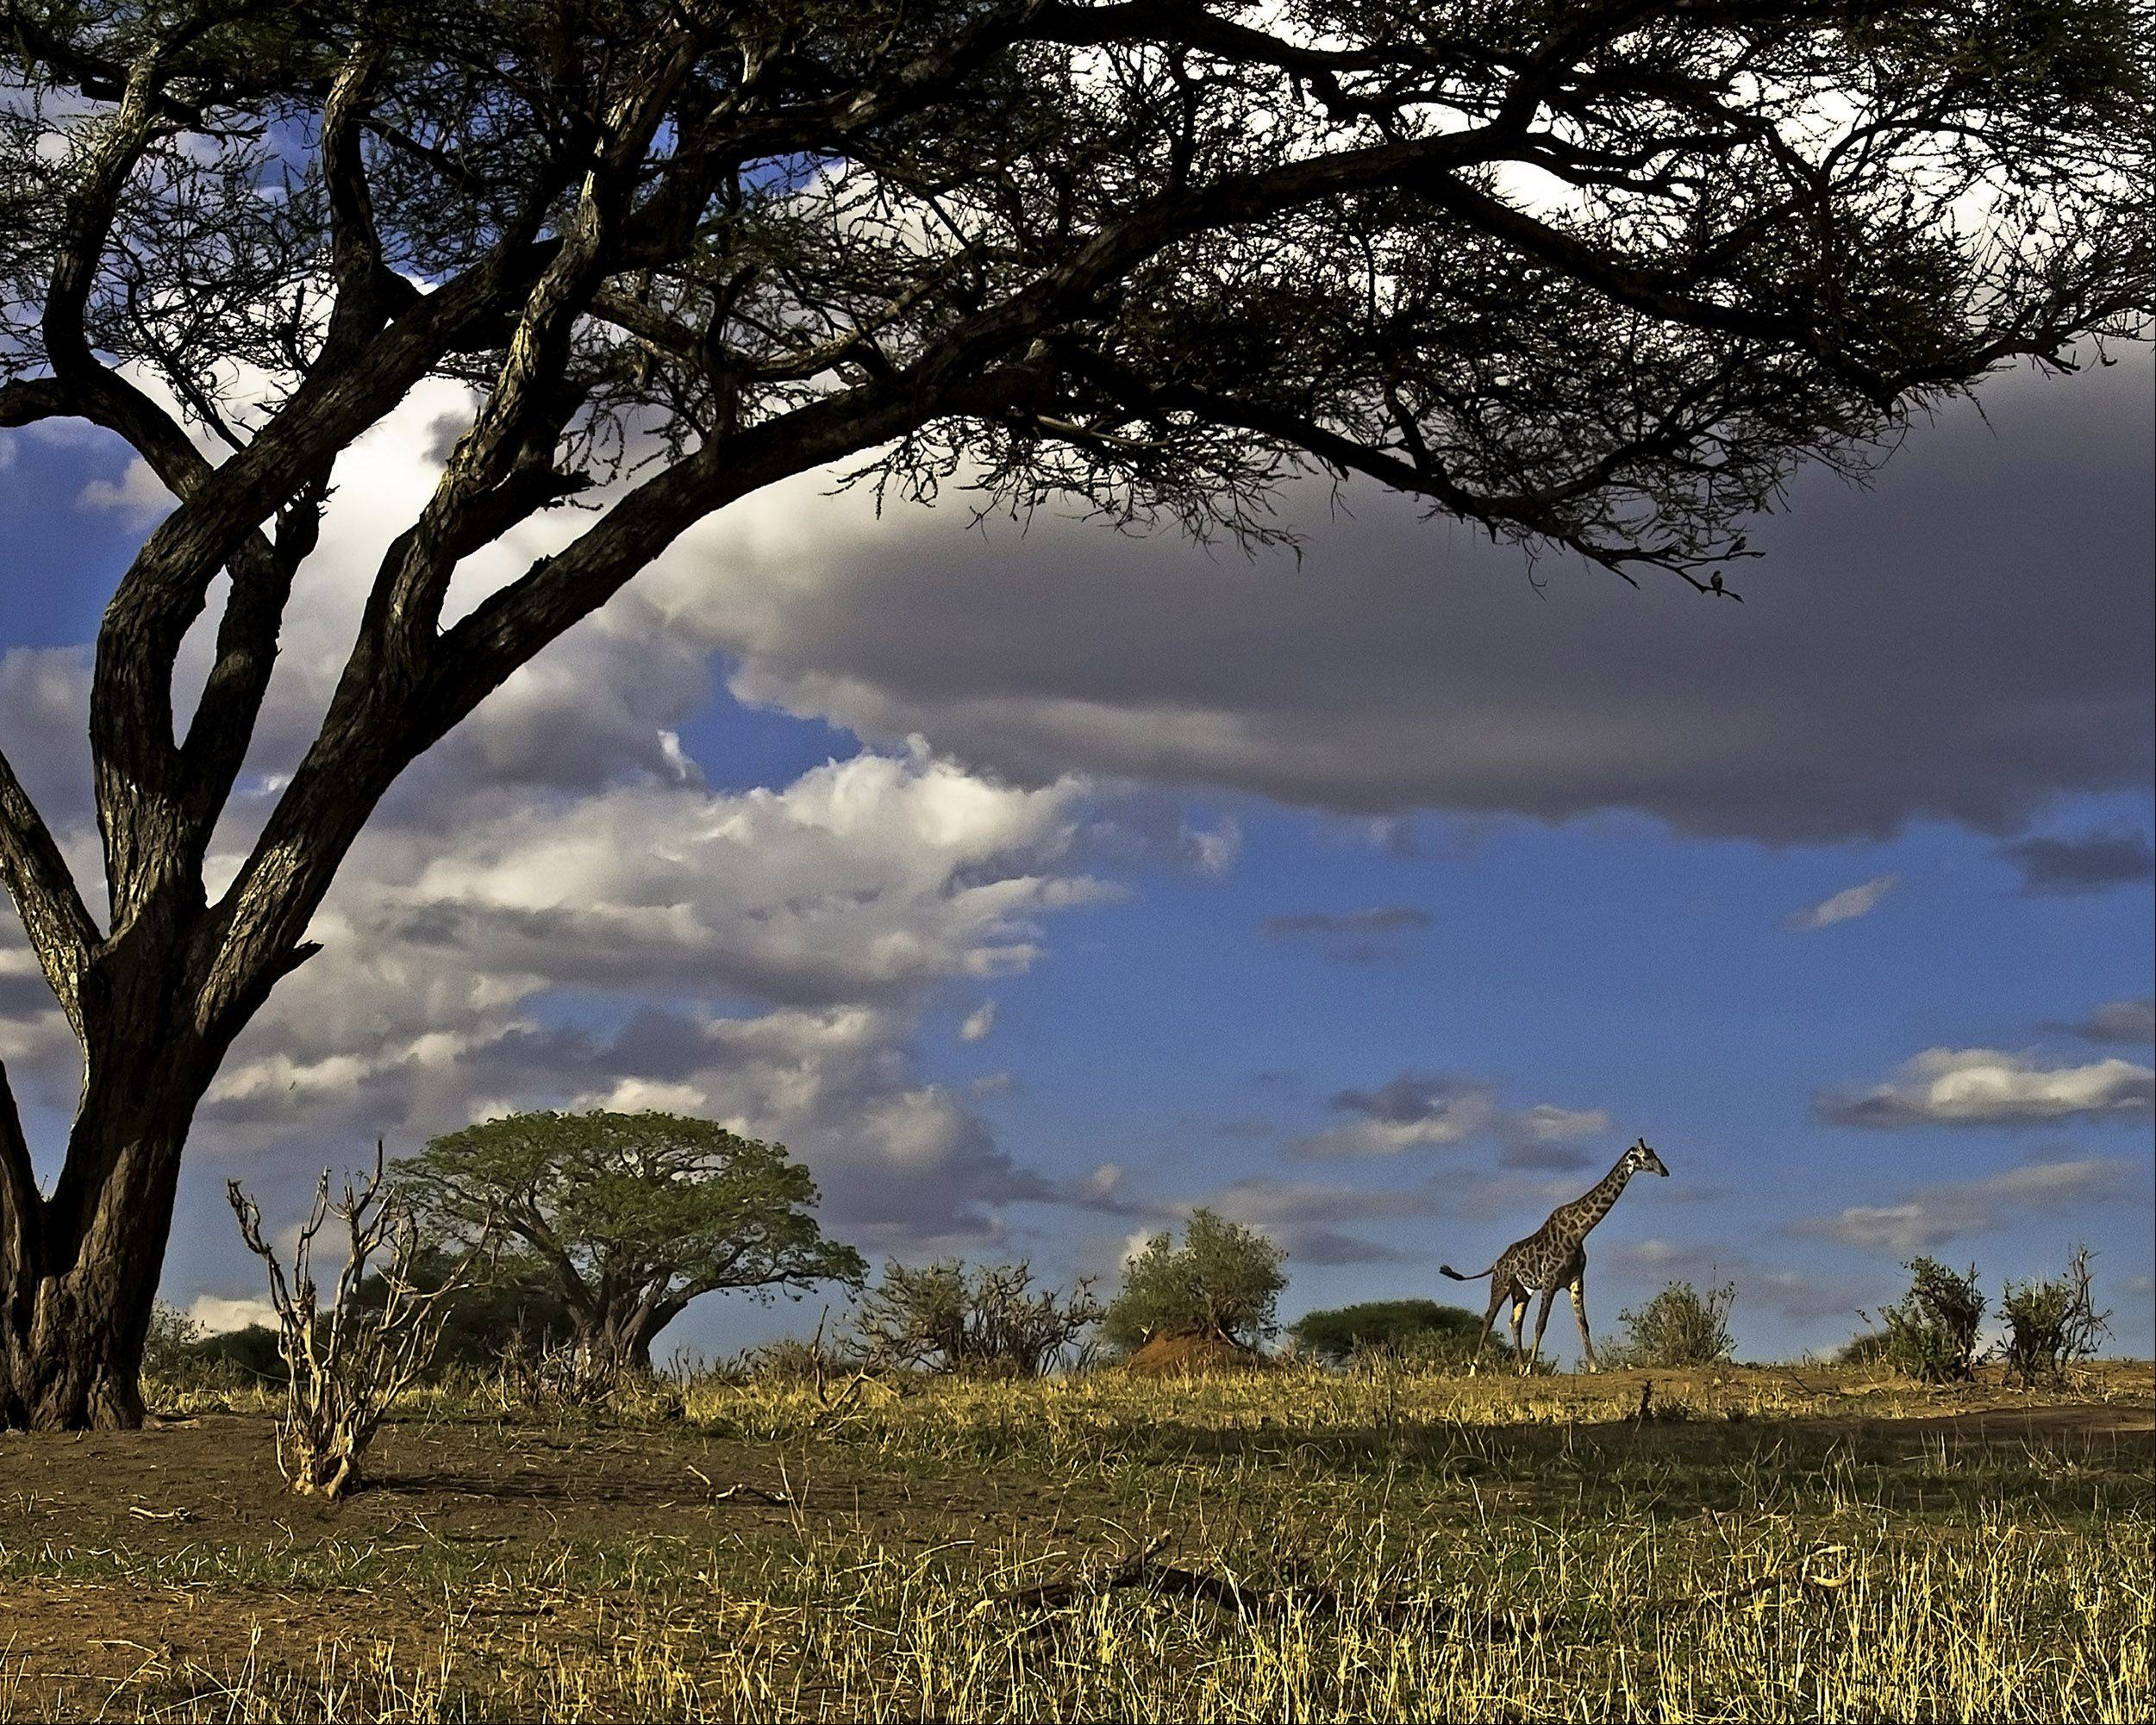 A giraffe walks across the savanna in Tarangire National Park, Tanzania on November 4, 2011. Giraffes are struggling with their survival due to the loss of habitat and poachers.